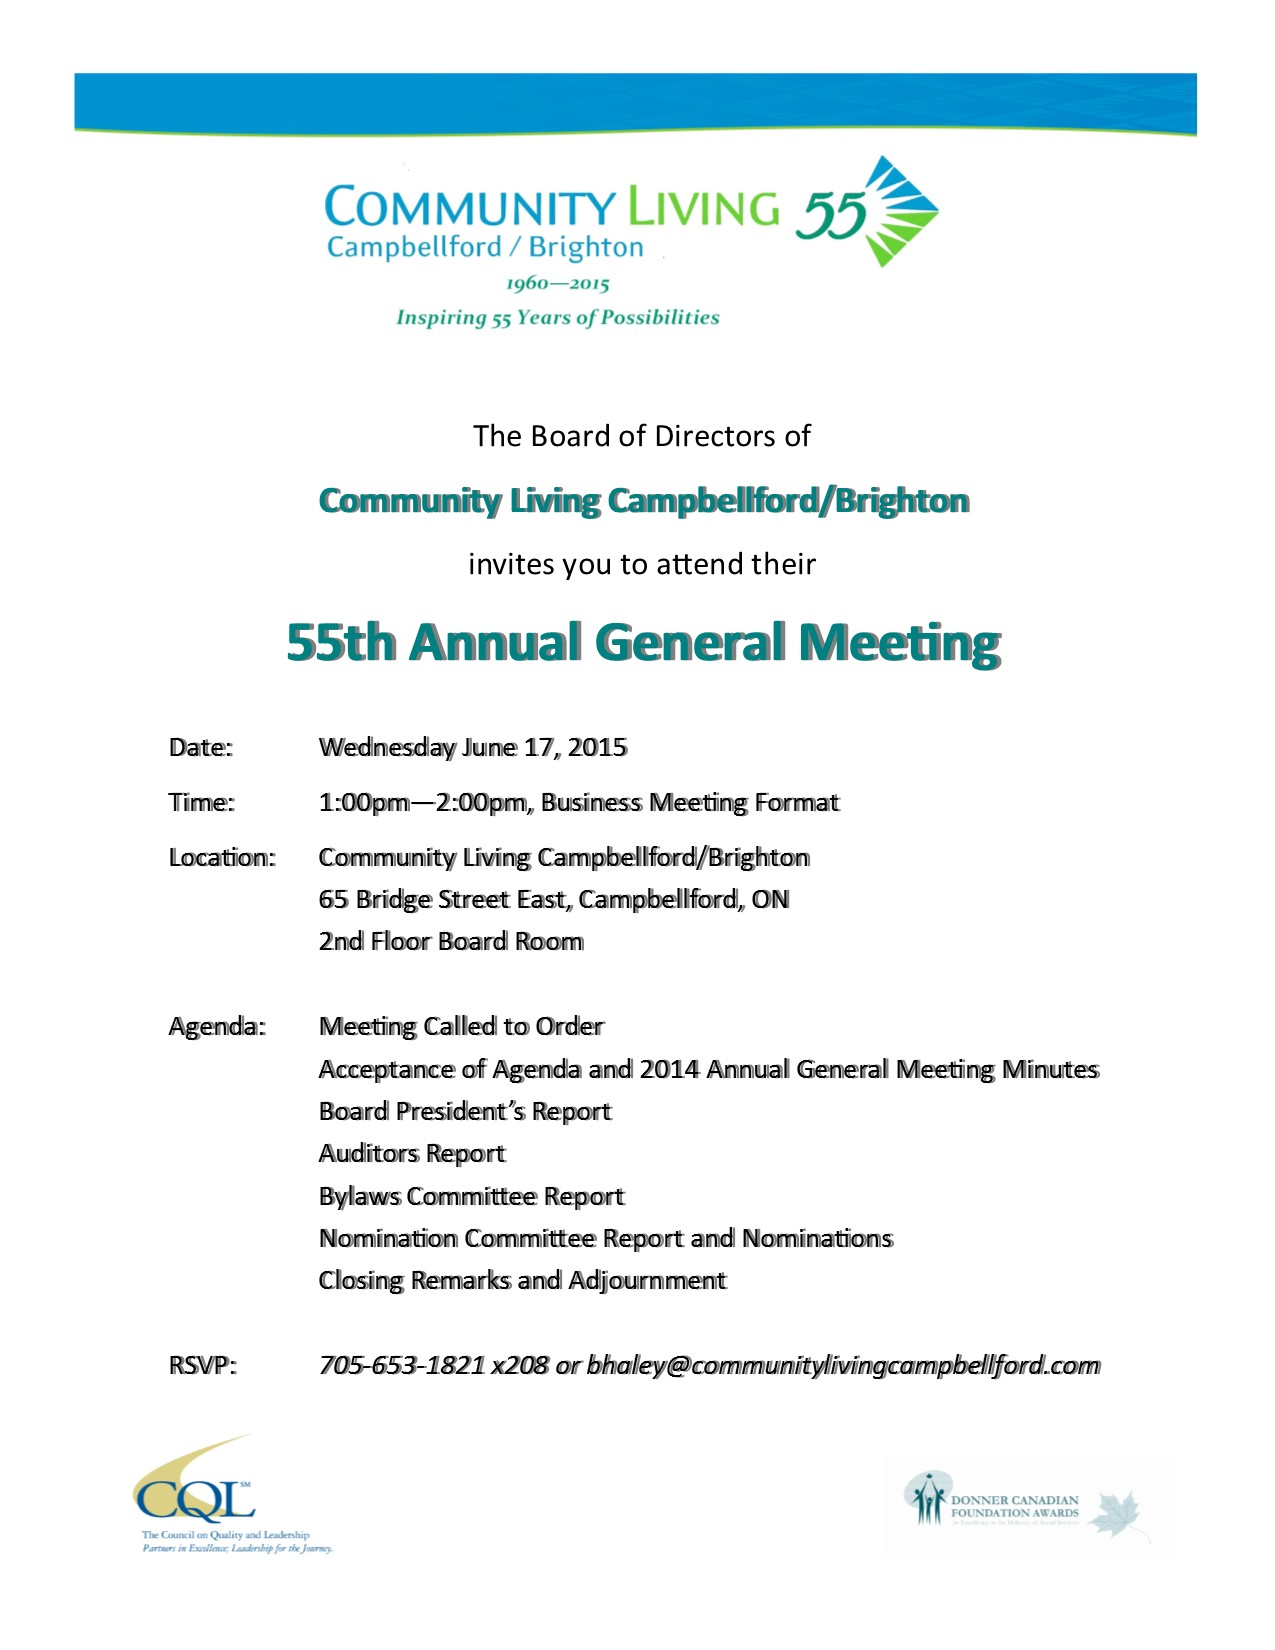 55th annual general meeting community living campbellford brighton agm invitation june 17 2015 3 thecheapjerseys